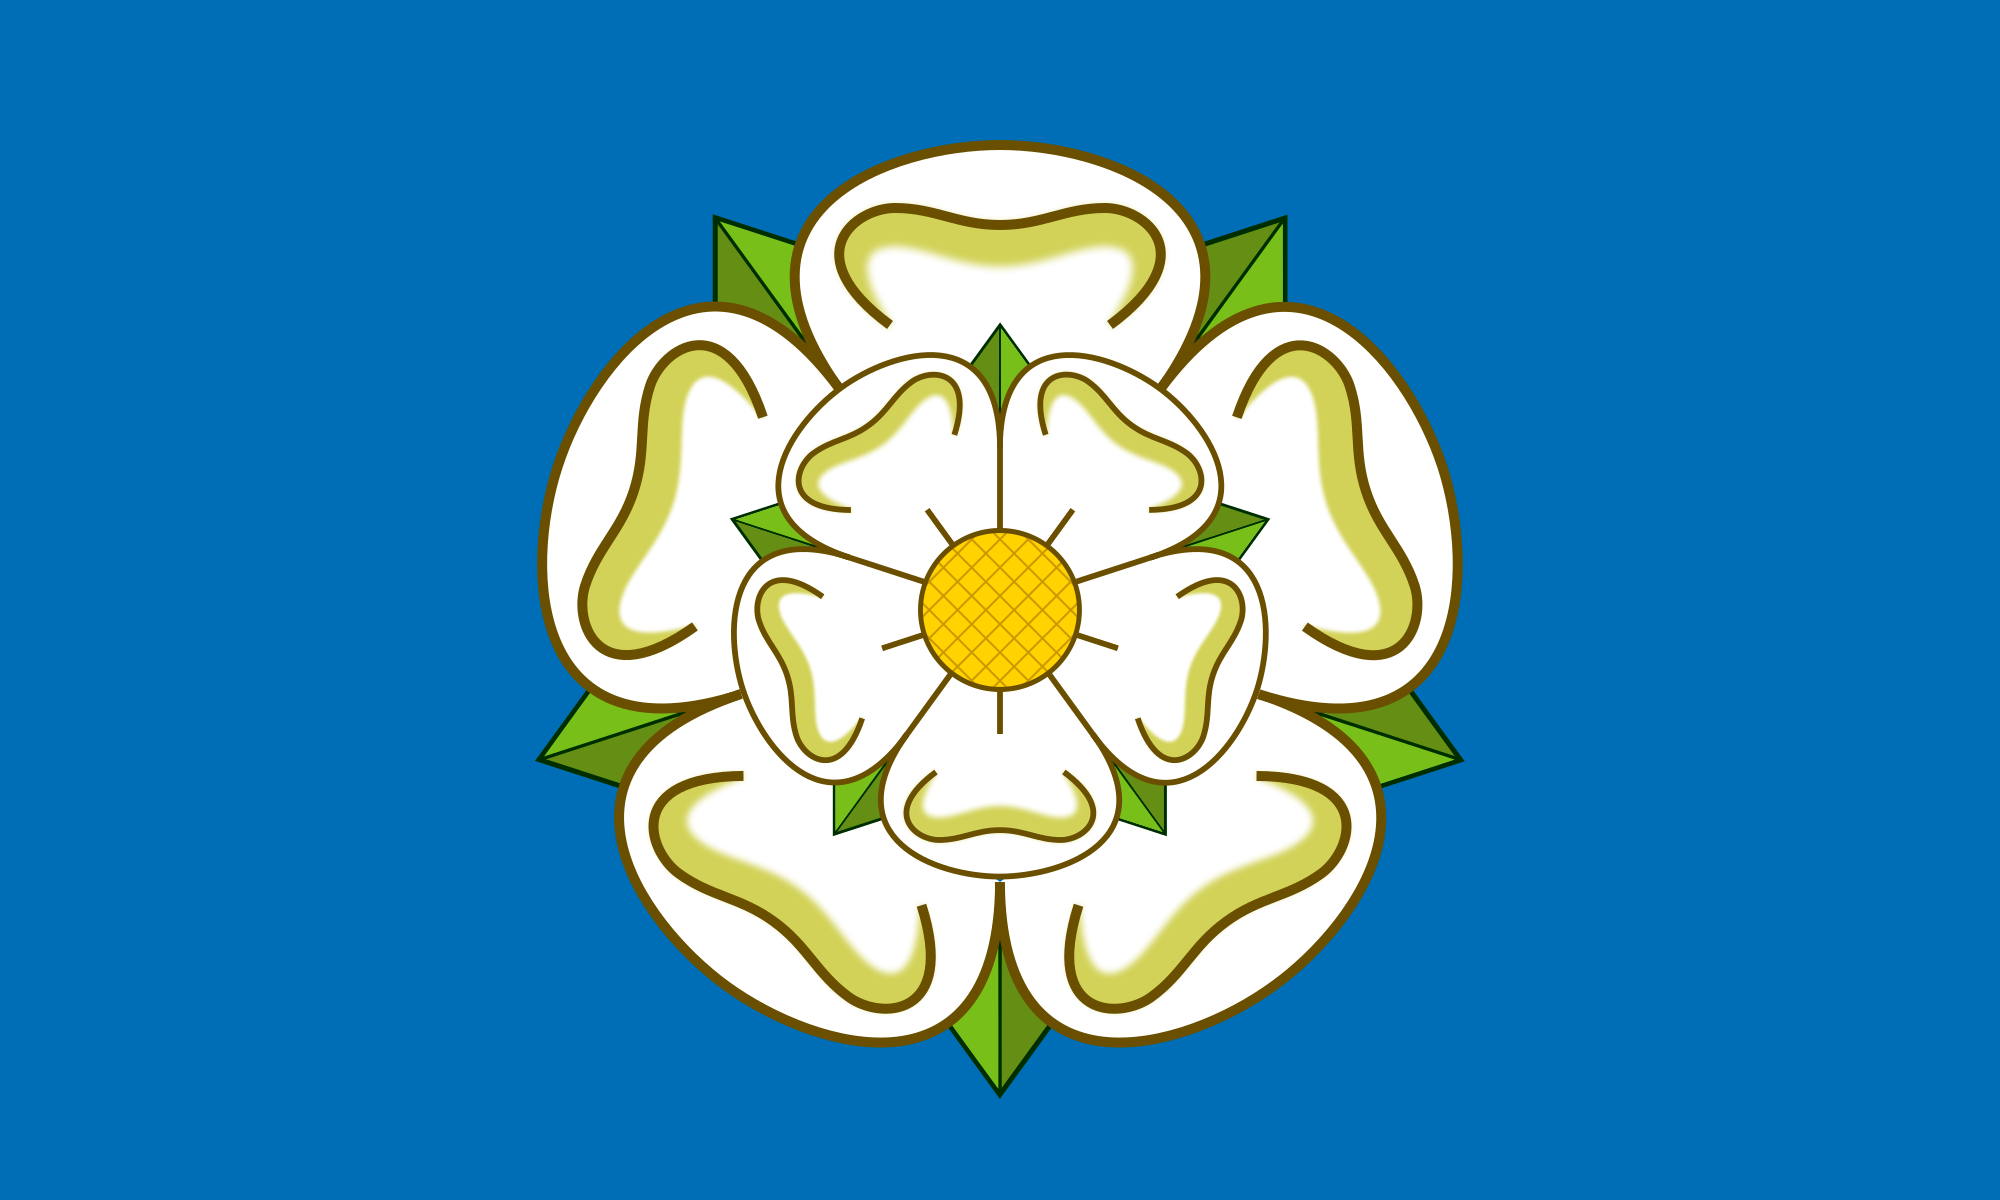 yorkshire seo flag